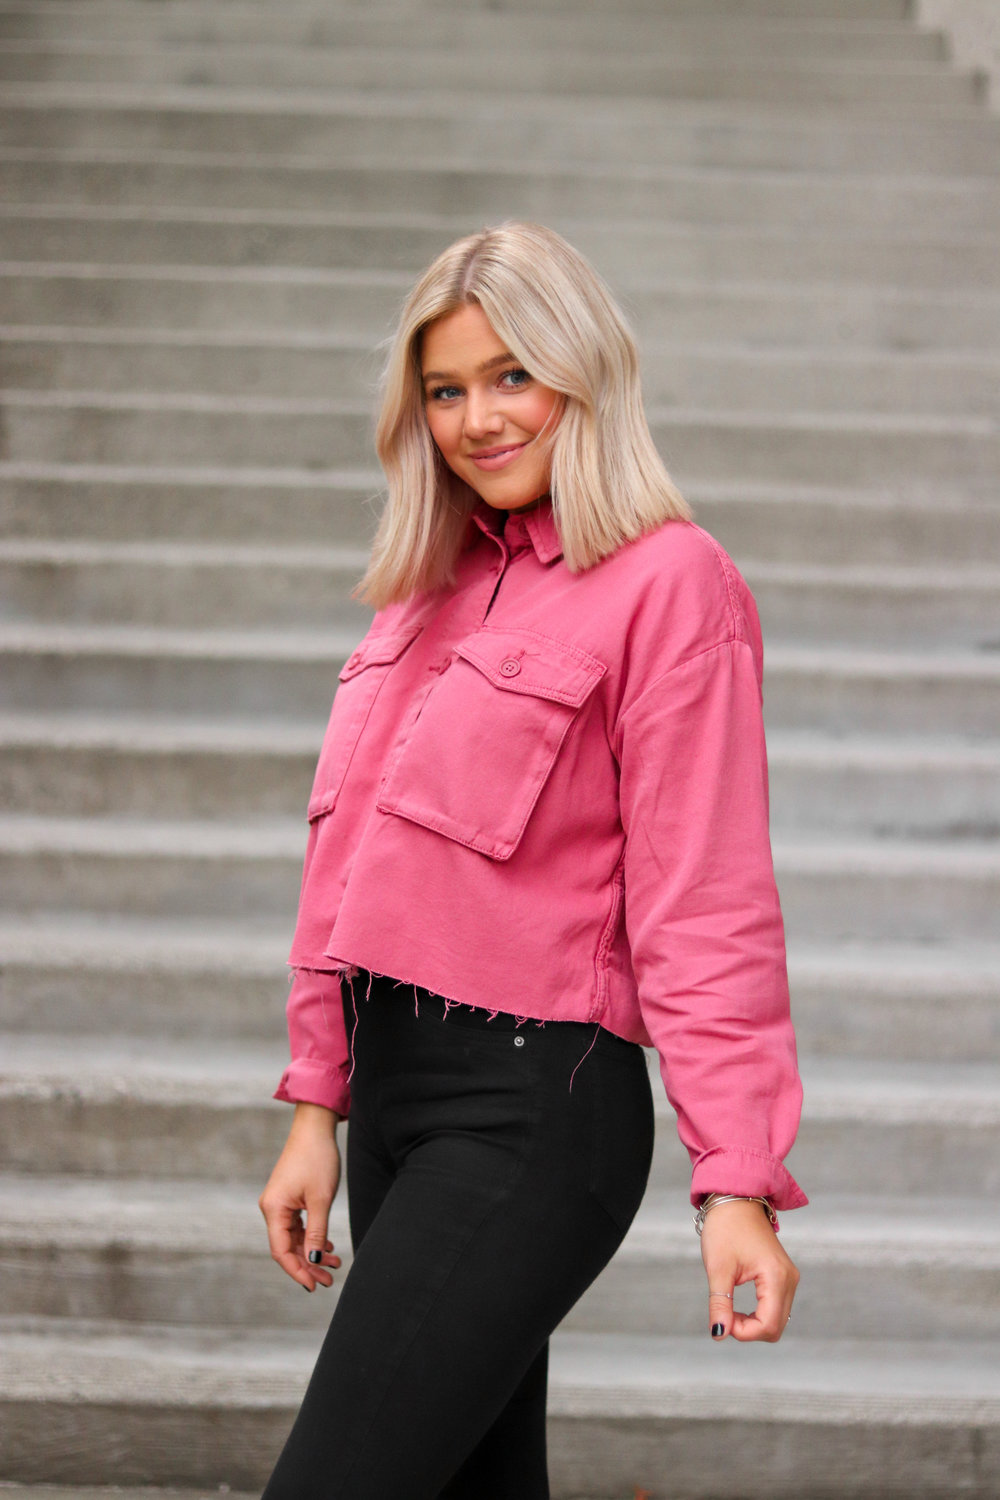 Casual Cool Under $75 With Nordstrom - Bre Sheppard 8.jpg